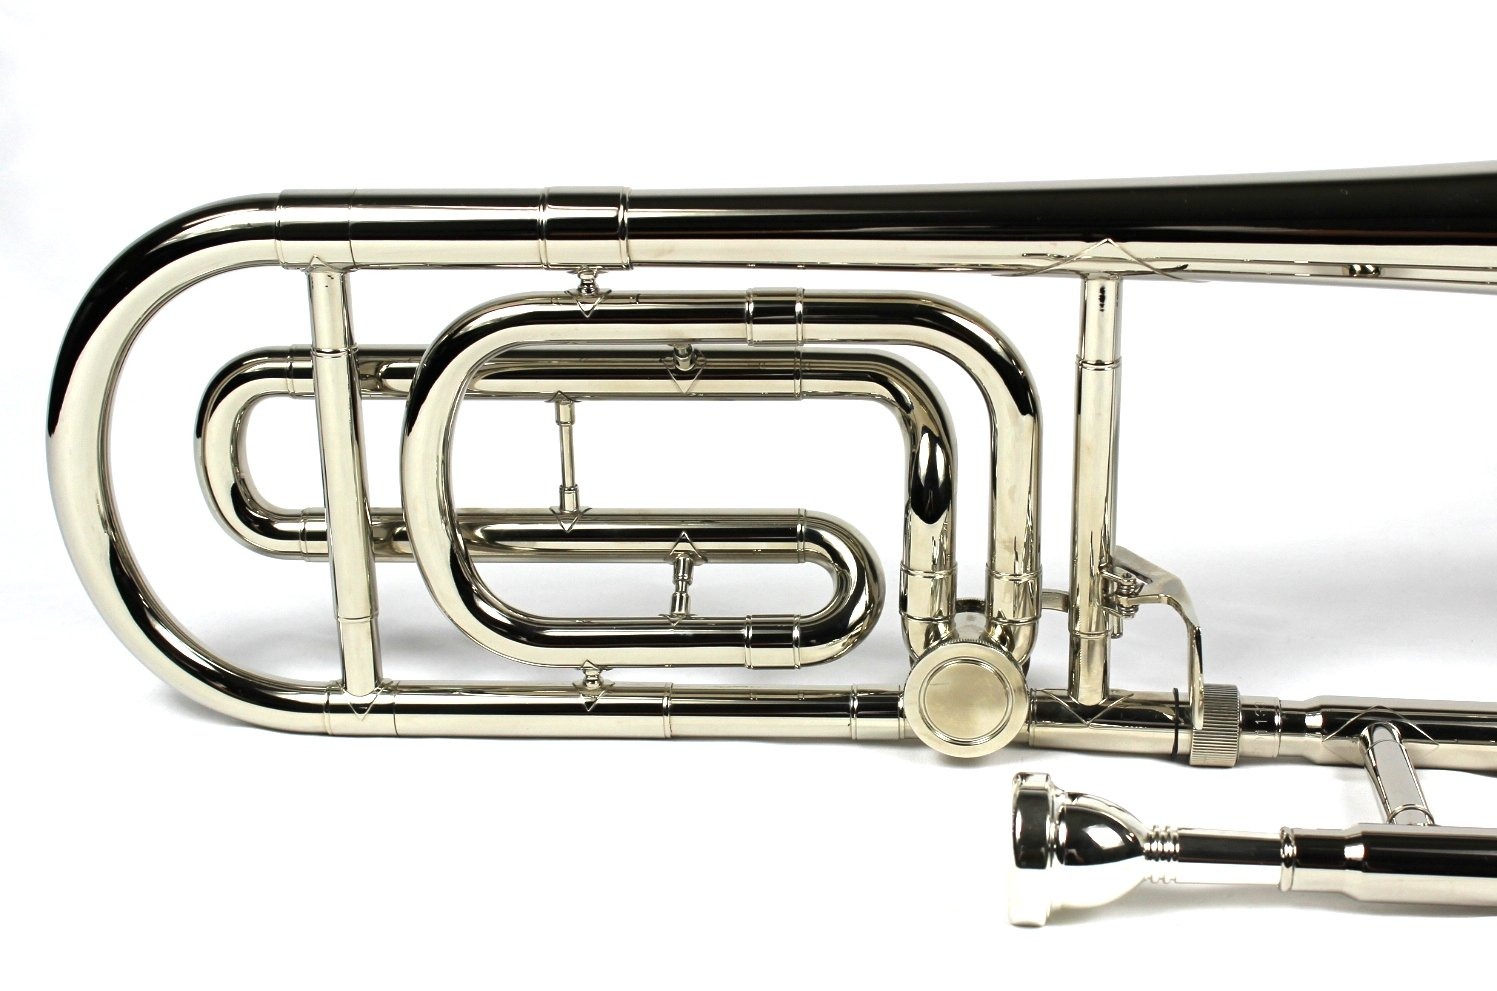 Brand New Bb/F Tenor Trombone w/ Case and Mouthpiece- Nickel Plated Finish by Moz (Image #6)